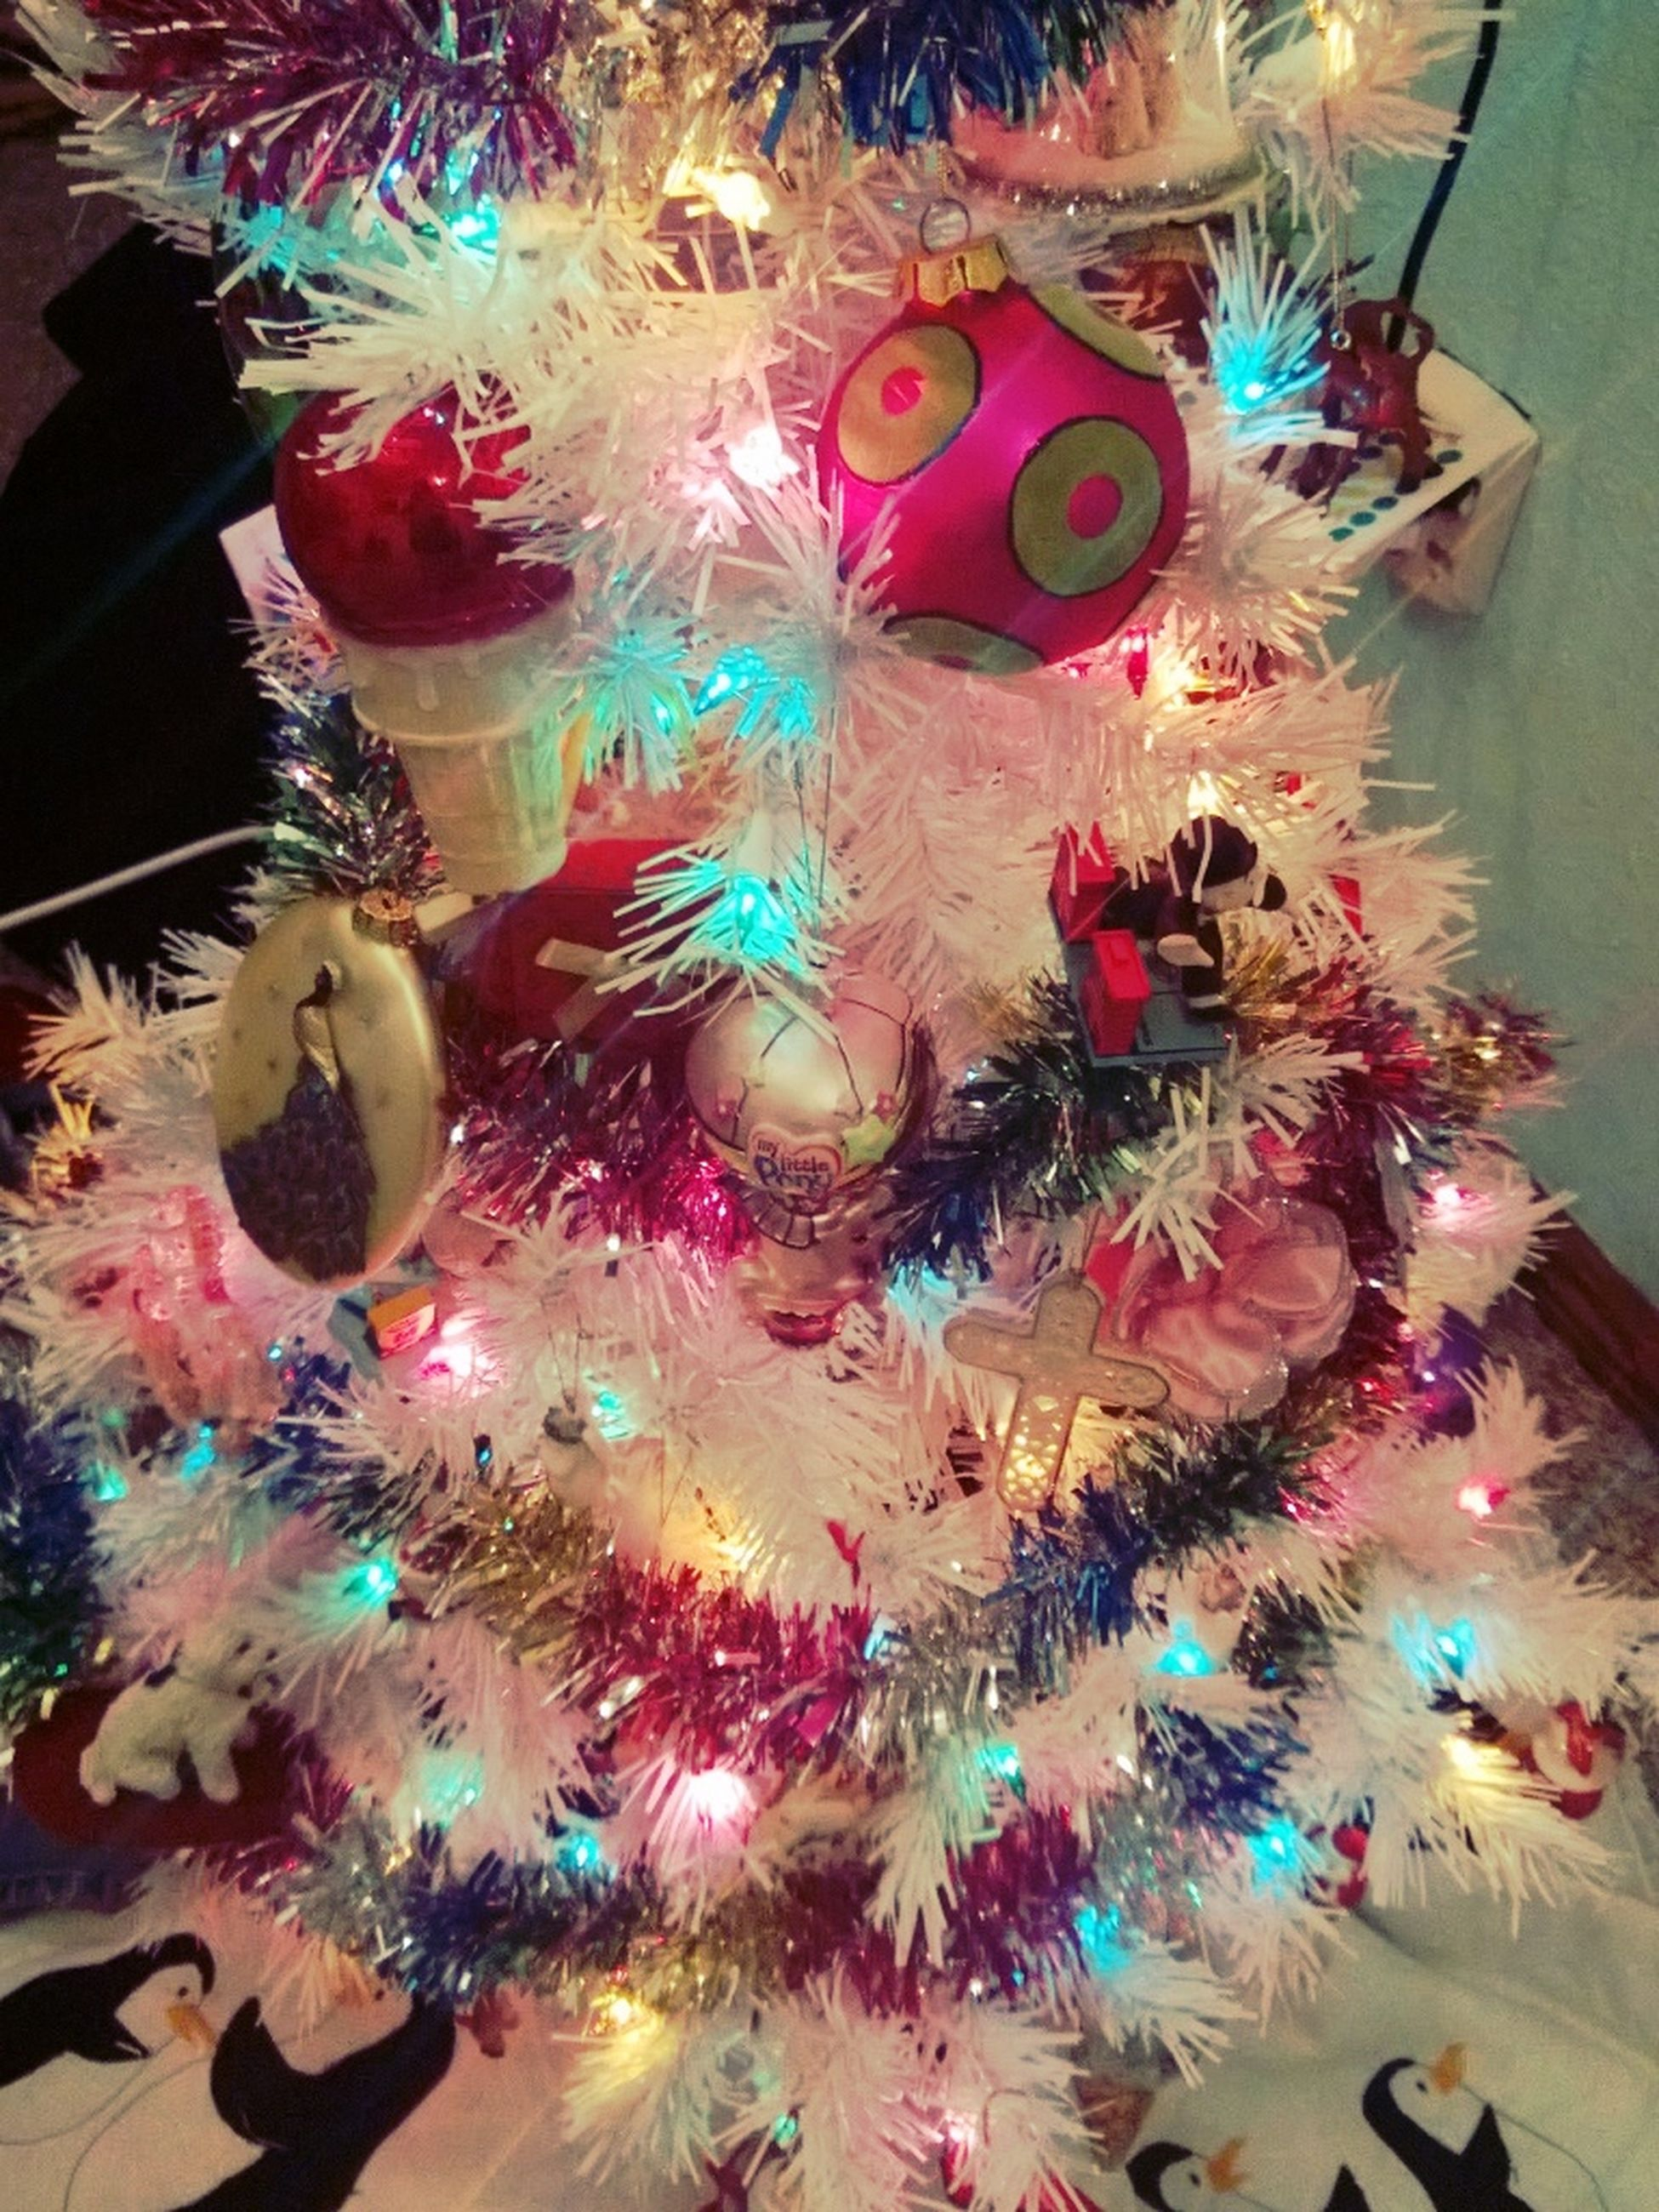 indoors, multi colored, art and craft, illuminated, art, celebration, decoration, creativity, variation, high angle view, colorful, animal representation, large group of objects, no people, christmas, celebration event, still life, arts culture and entertainment, pattern, christmas decoration